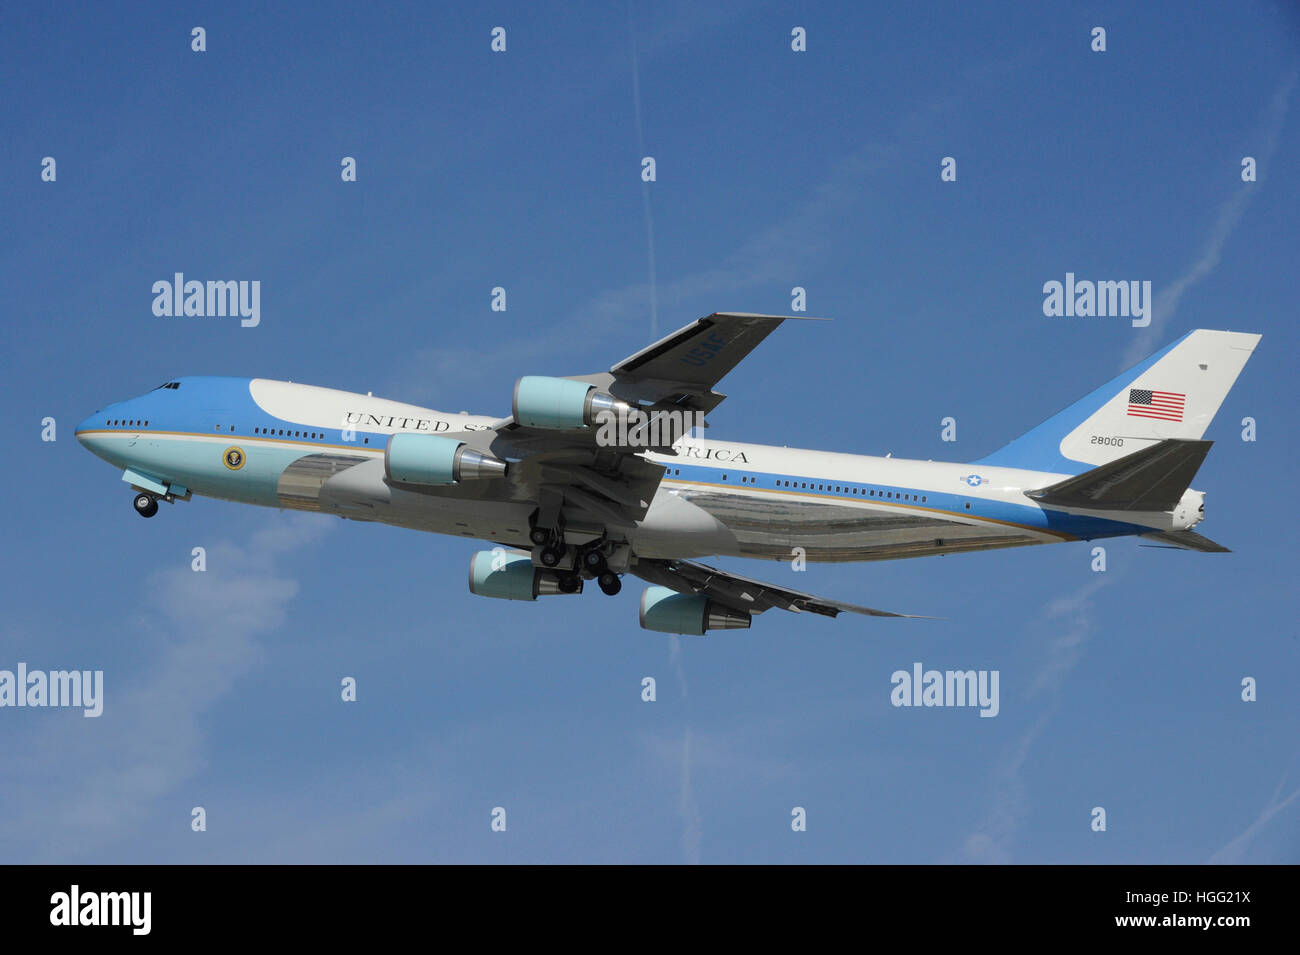 Air Force One nehmen Sie fliegen hoch in den Himmel am LAX